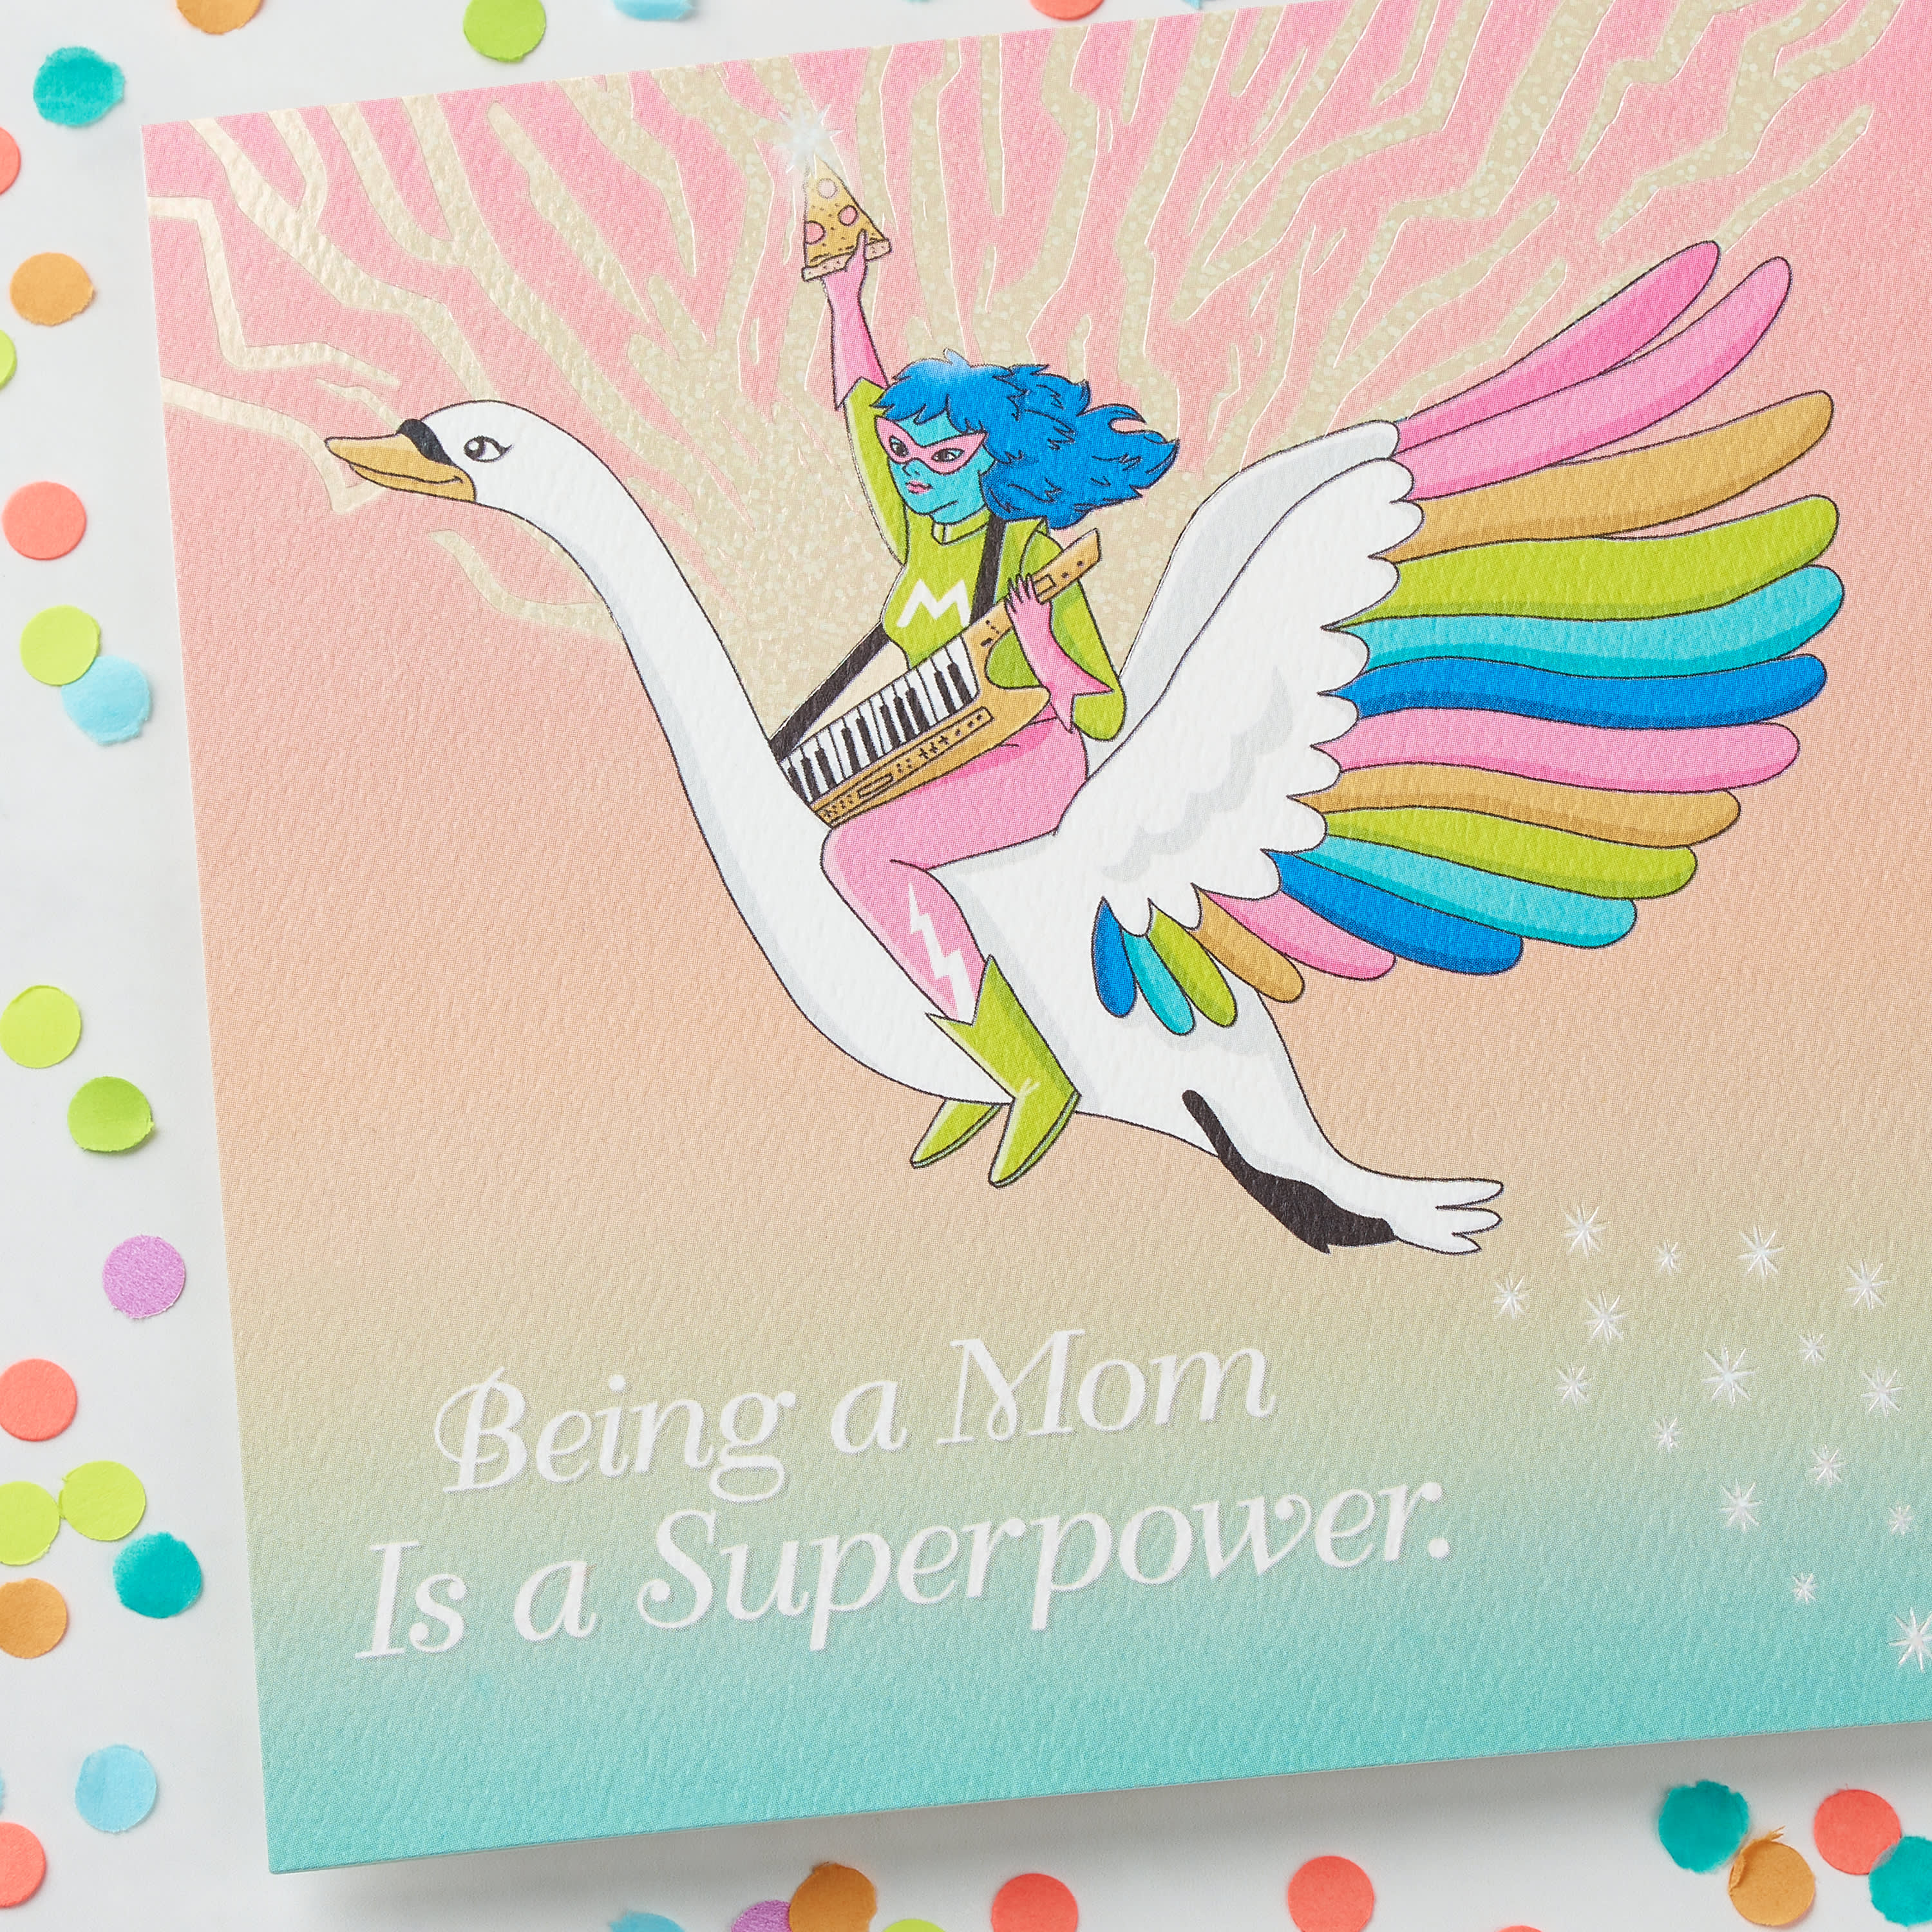 Funny Superpower Mother's Day Card image